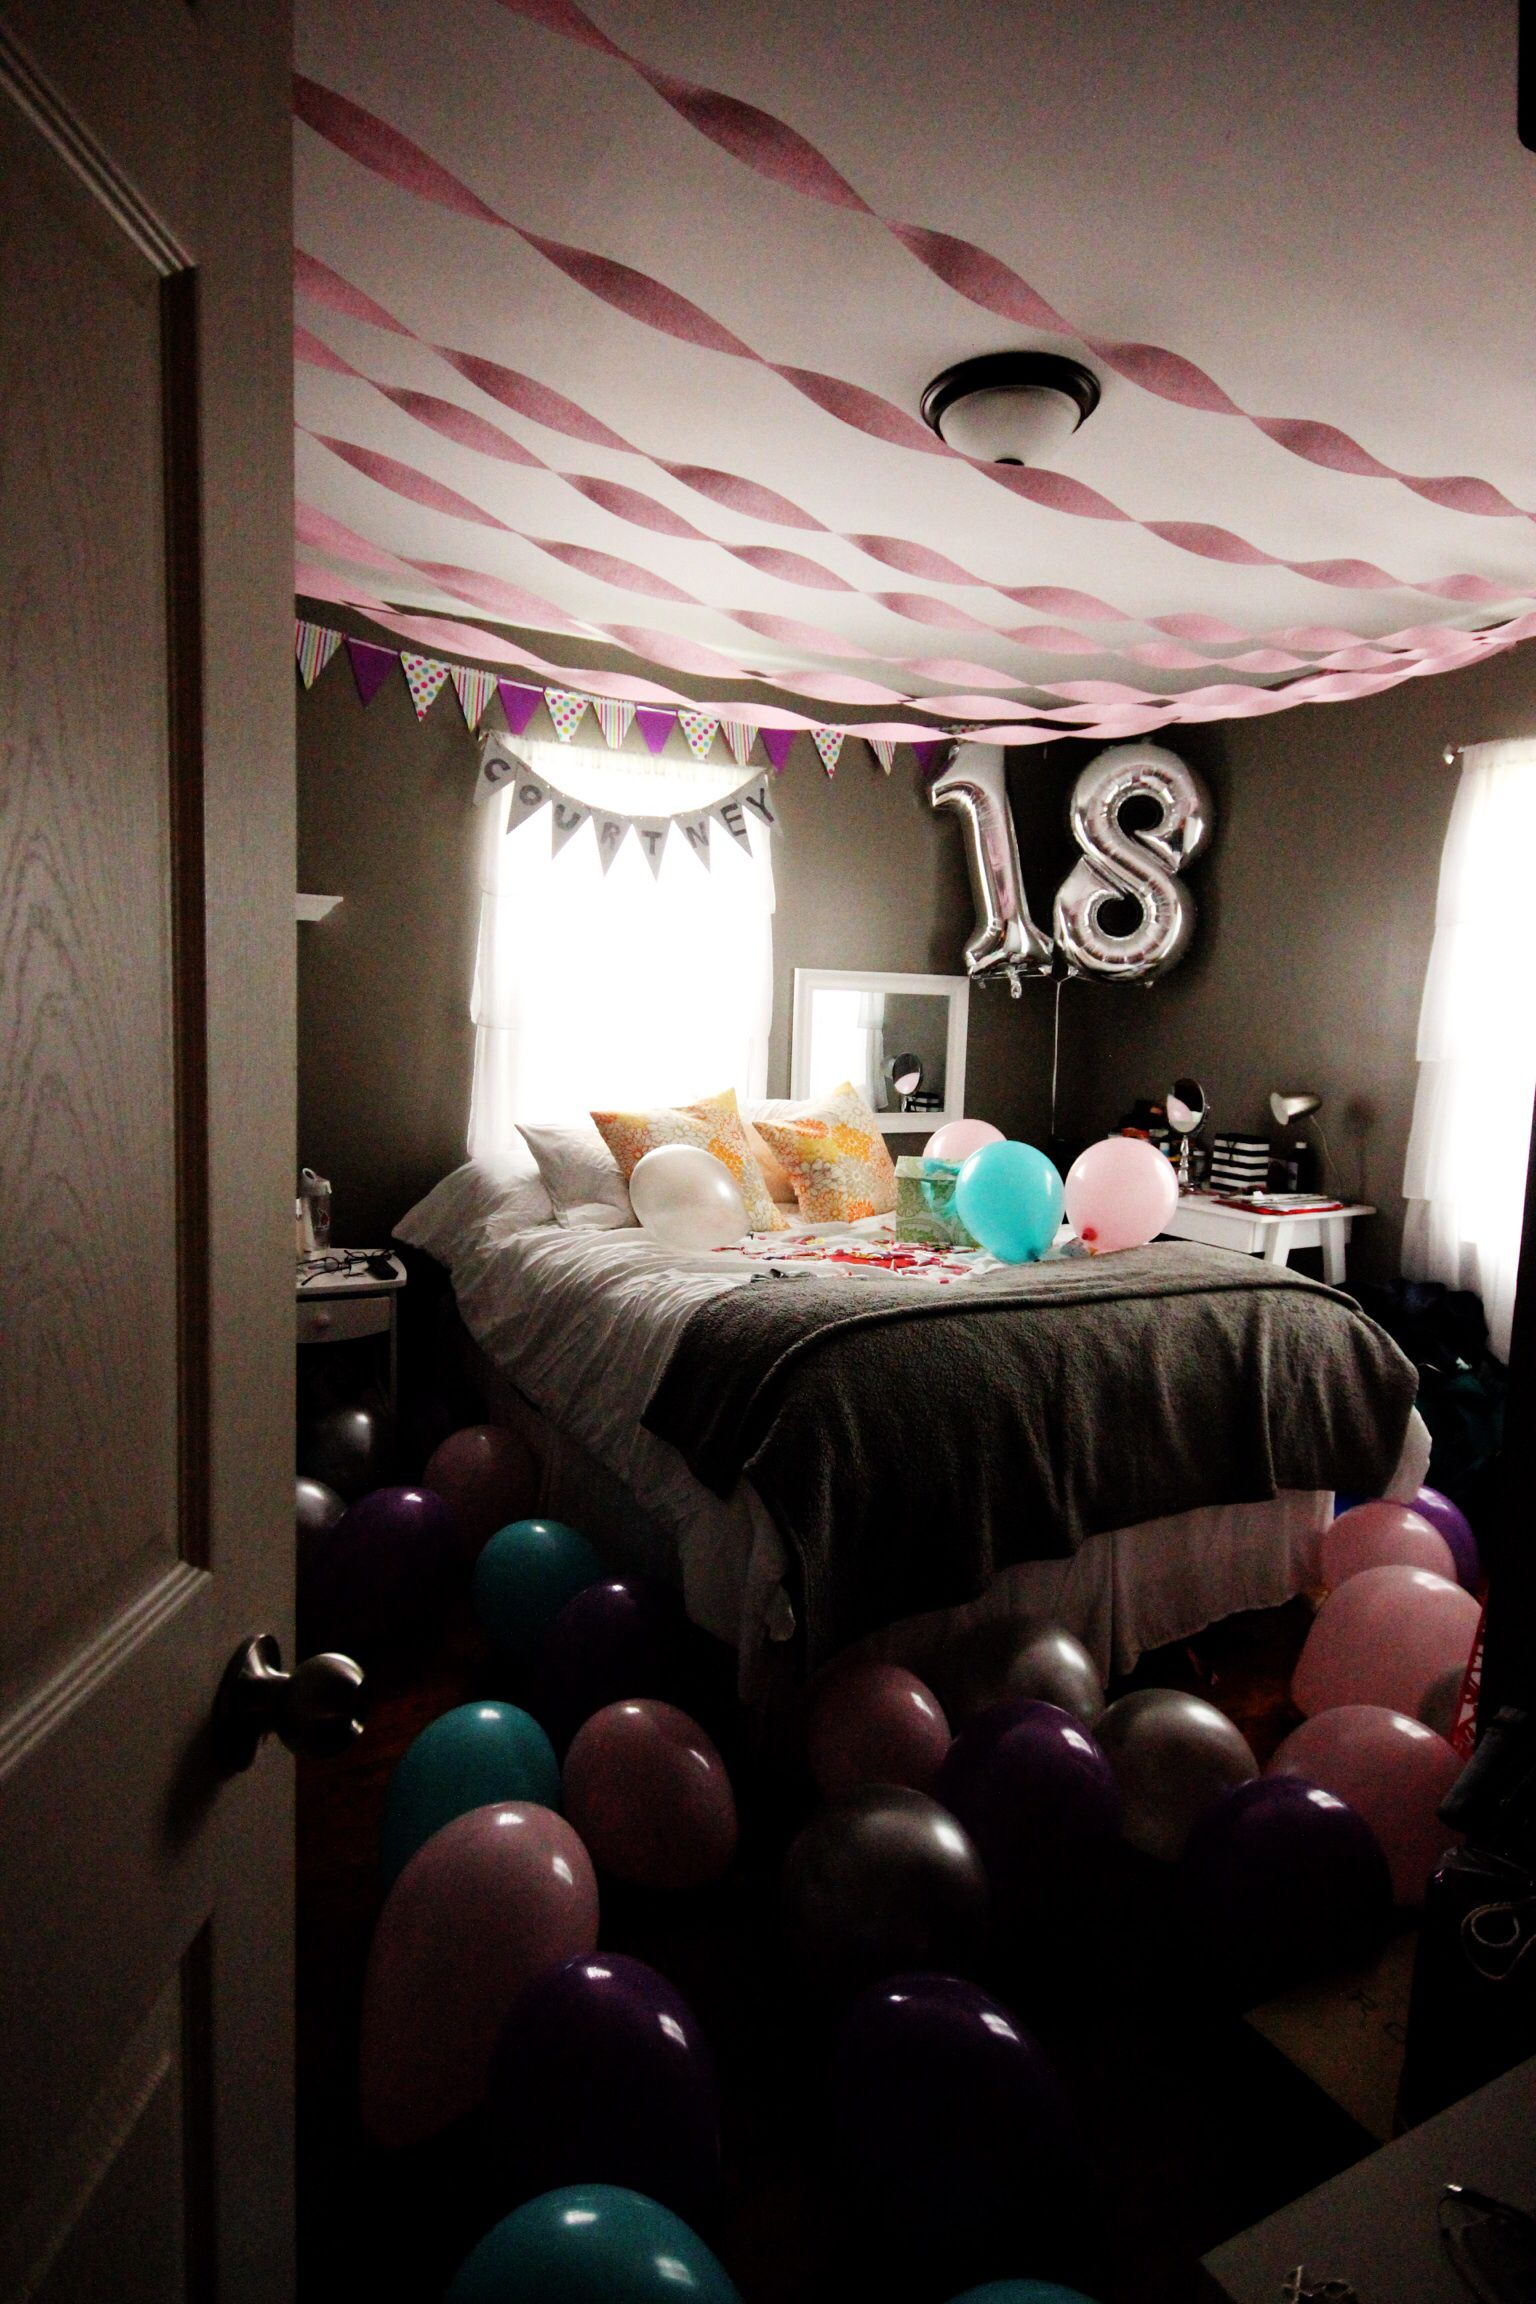 Bedroom surprise for birthday it 39 s me kiersten marie for Cute hotel rooms